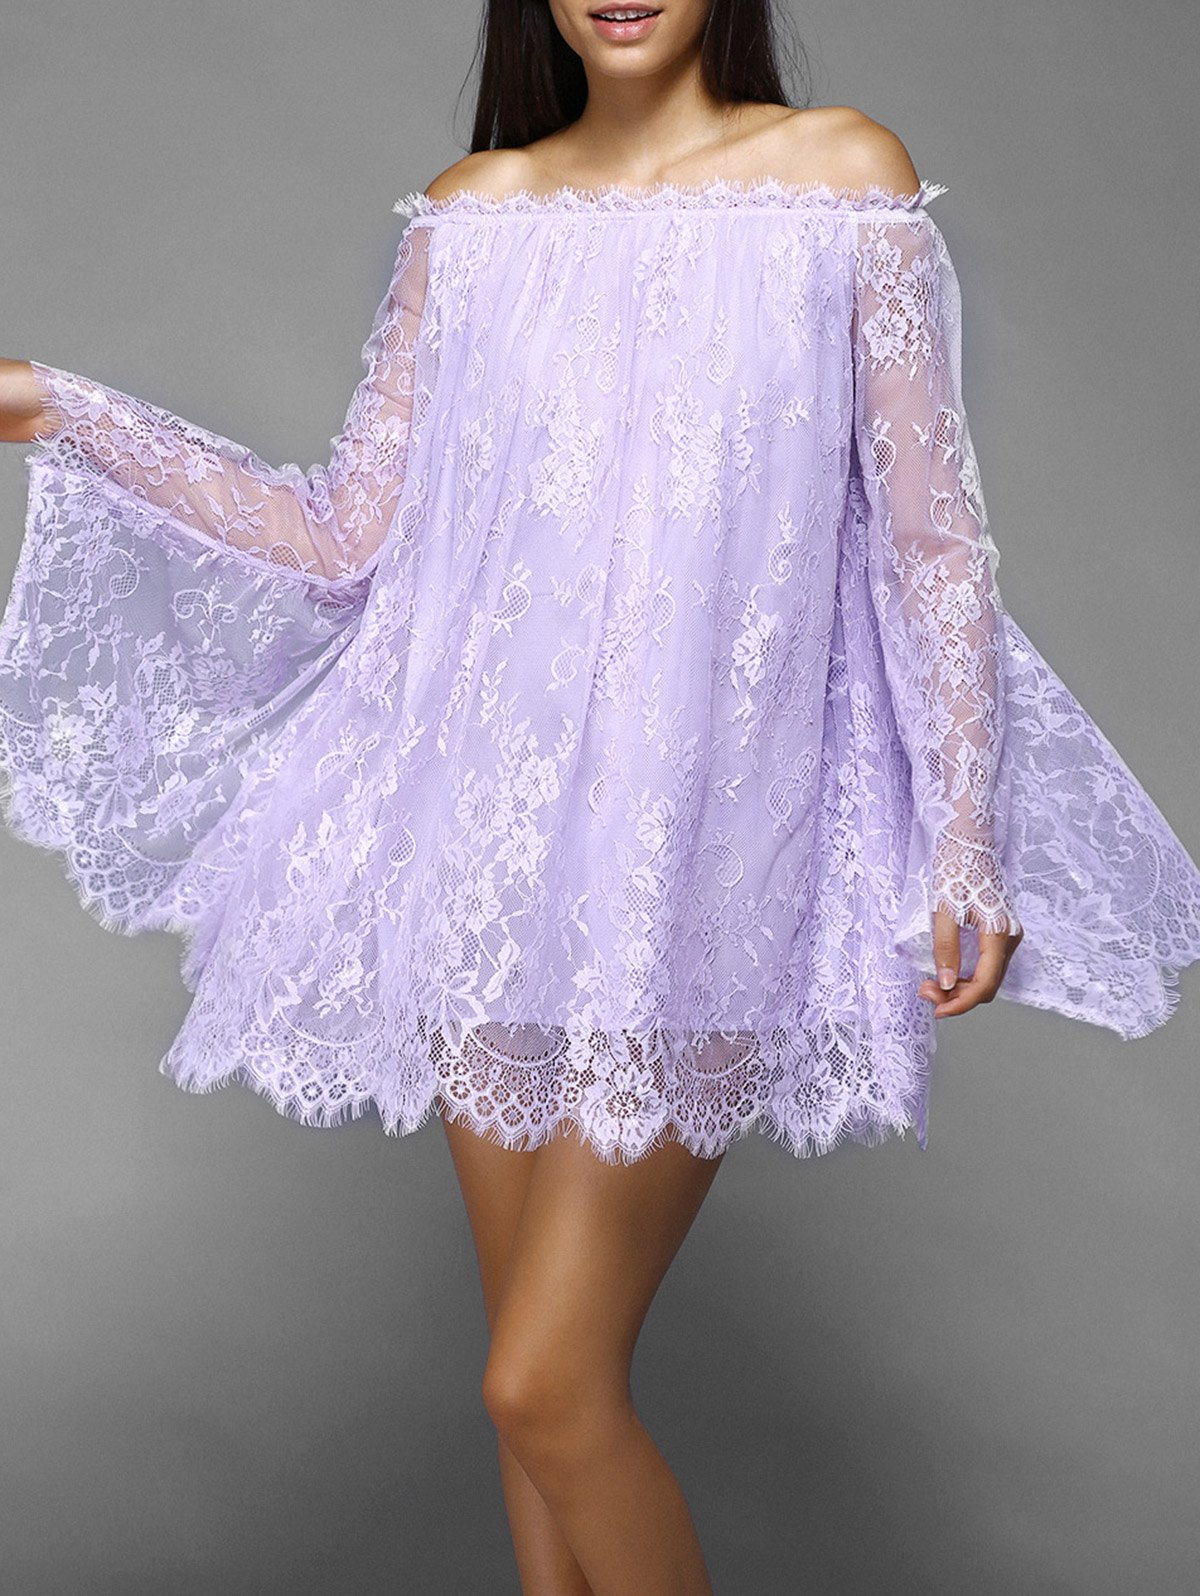 Off The Shoulder Puff Sleeve Lace Dress - PURPLE M